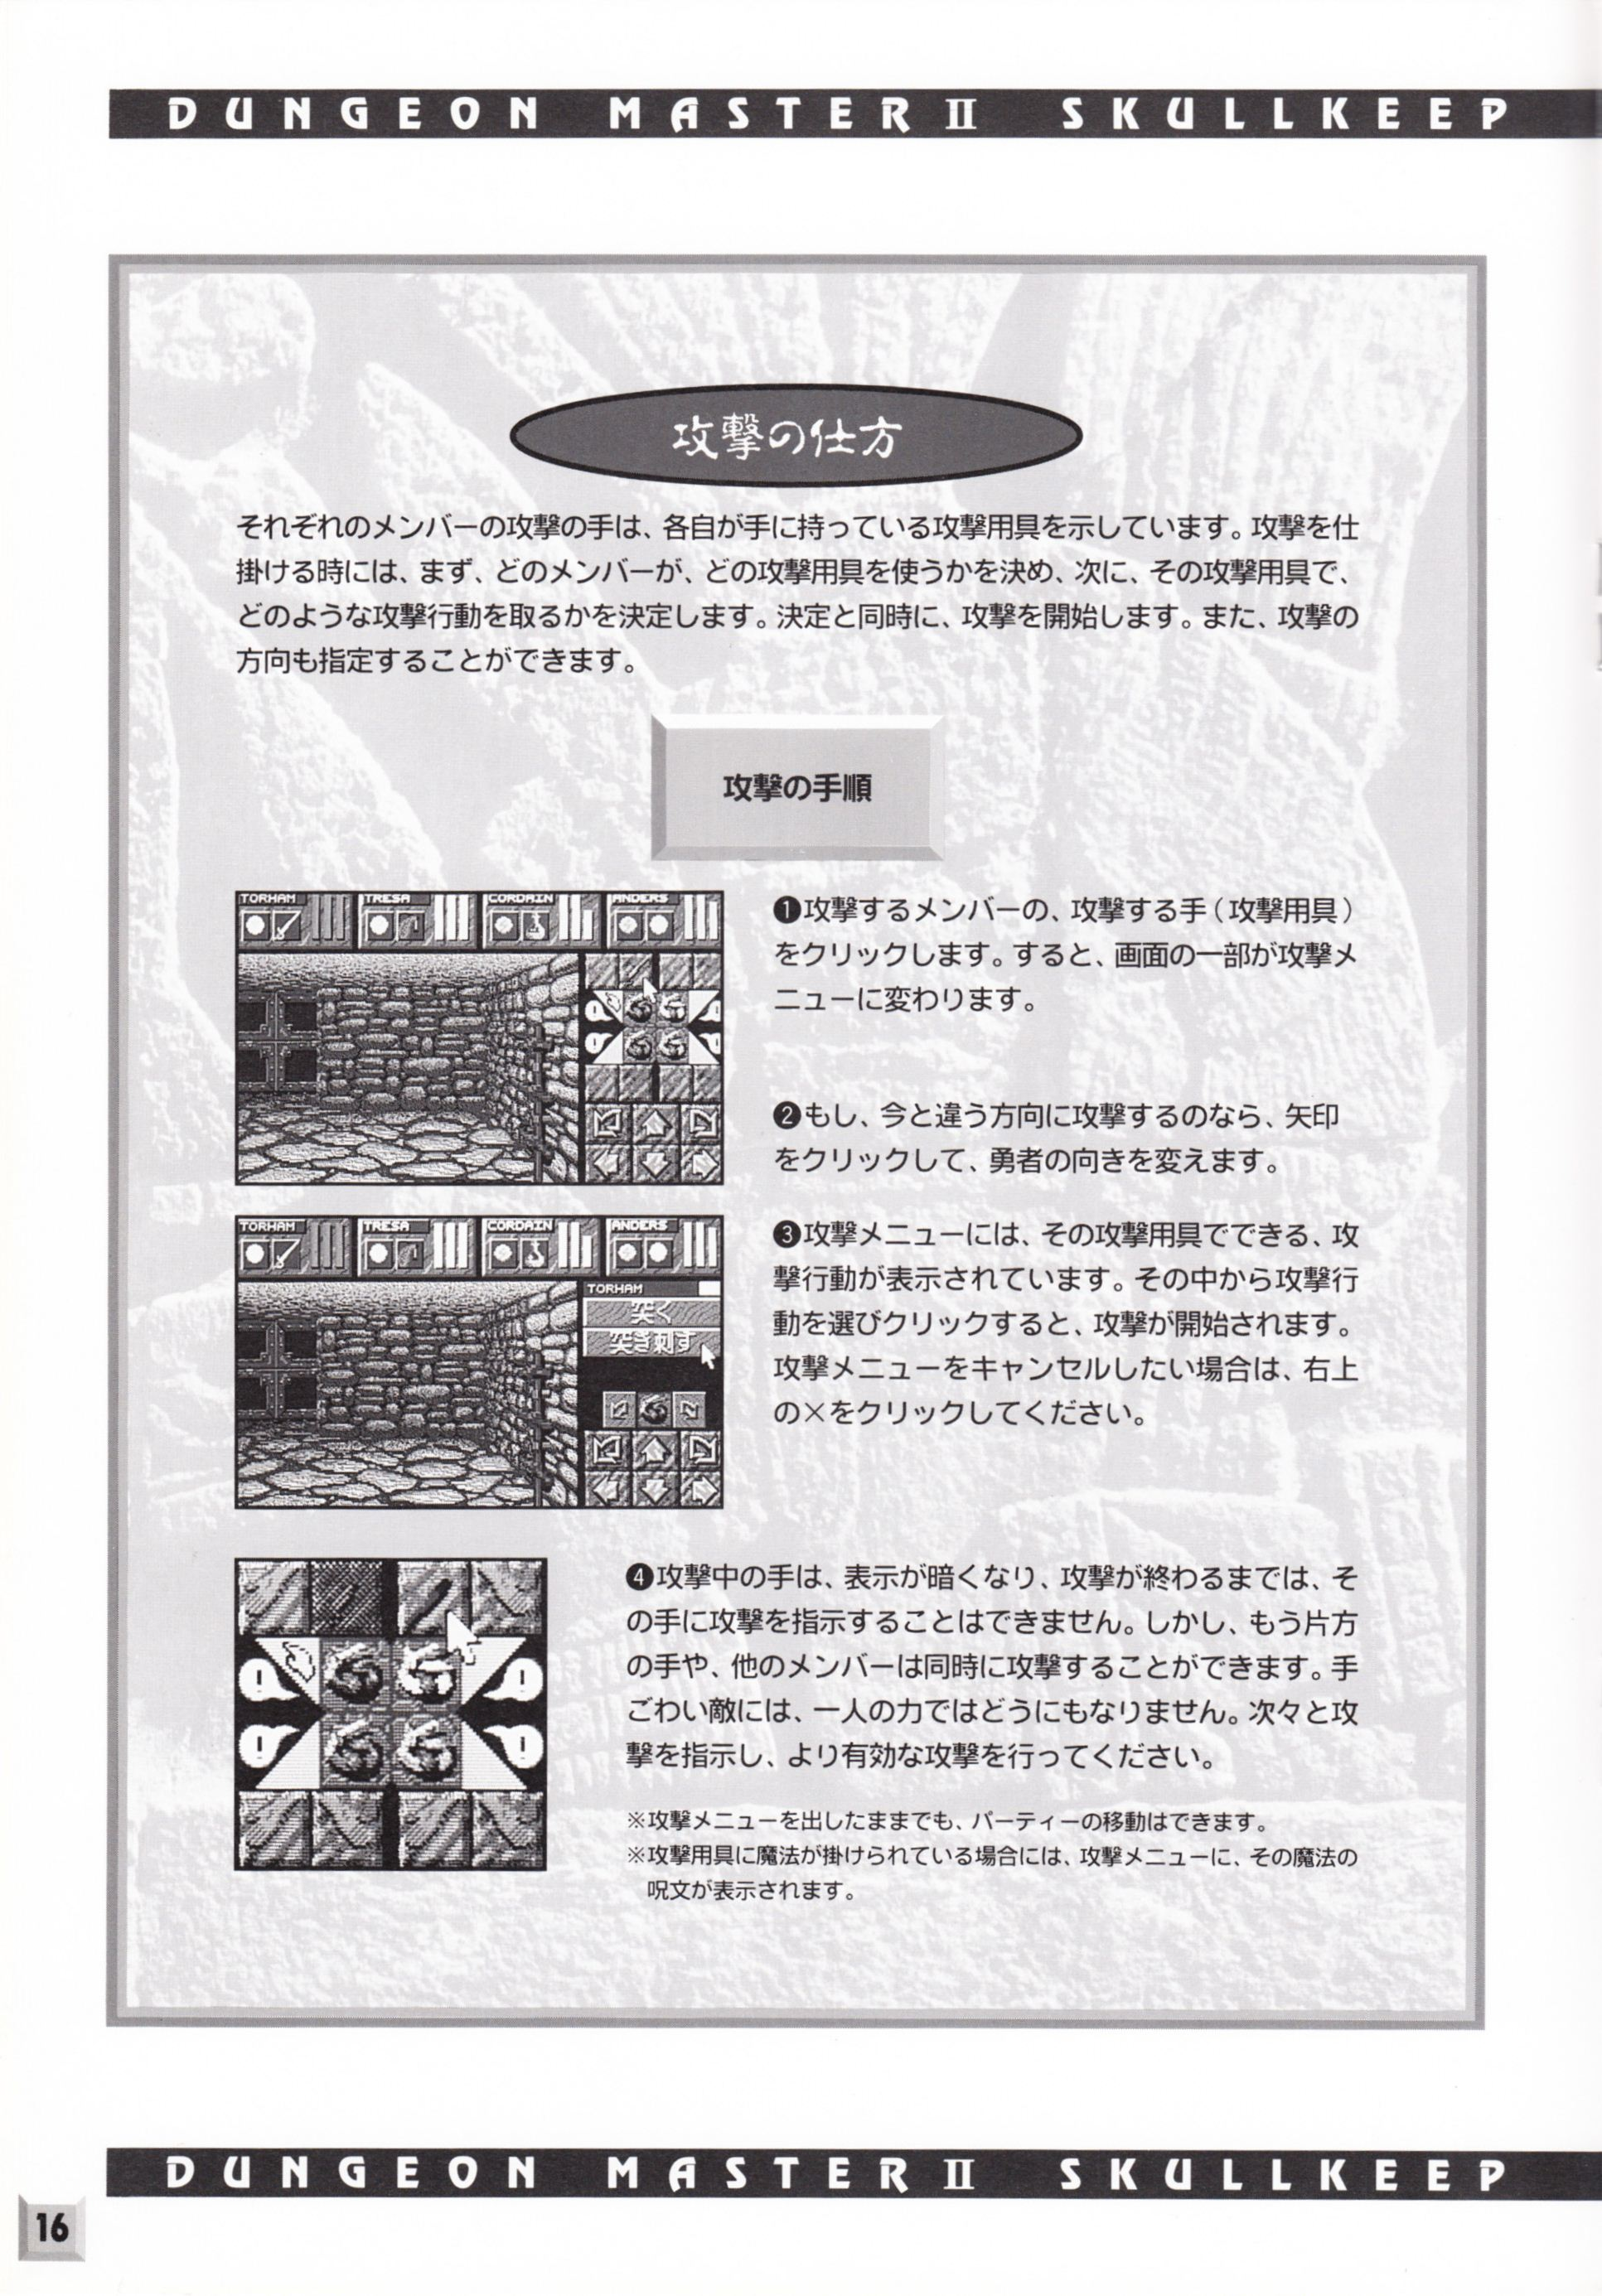 Game - Dungeon Master II - JP - PC-9801 - 3.5-inch - An Operation Manual - Page 018 - Scan